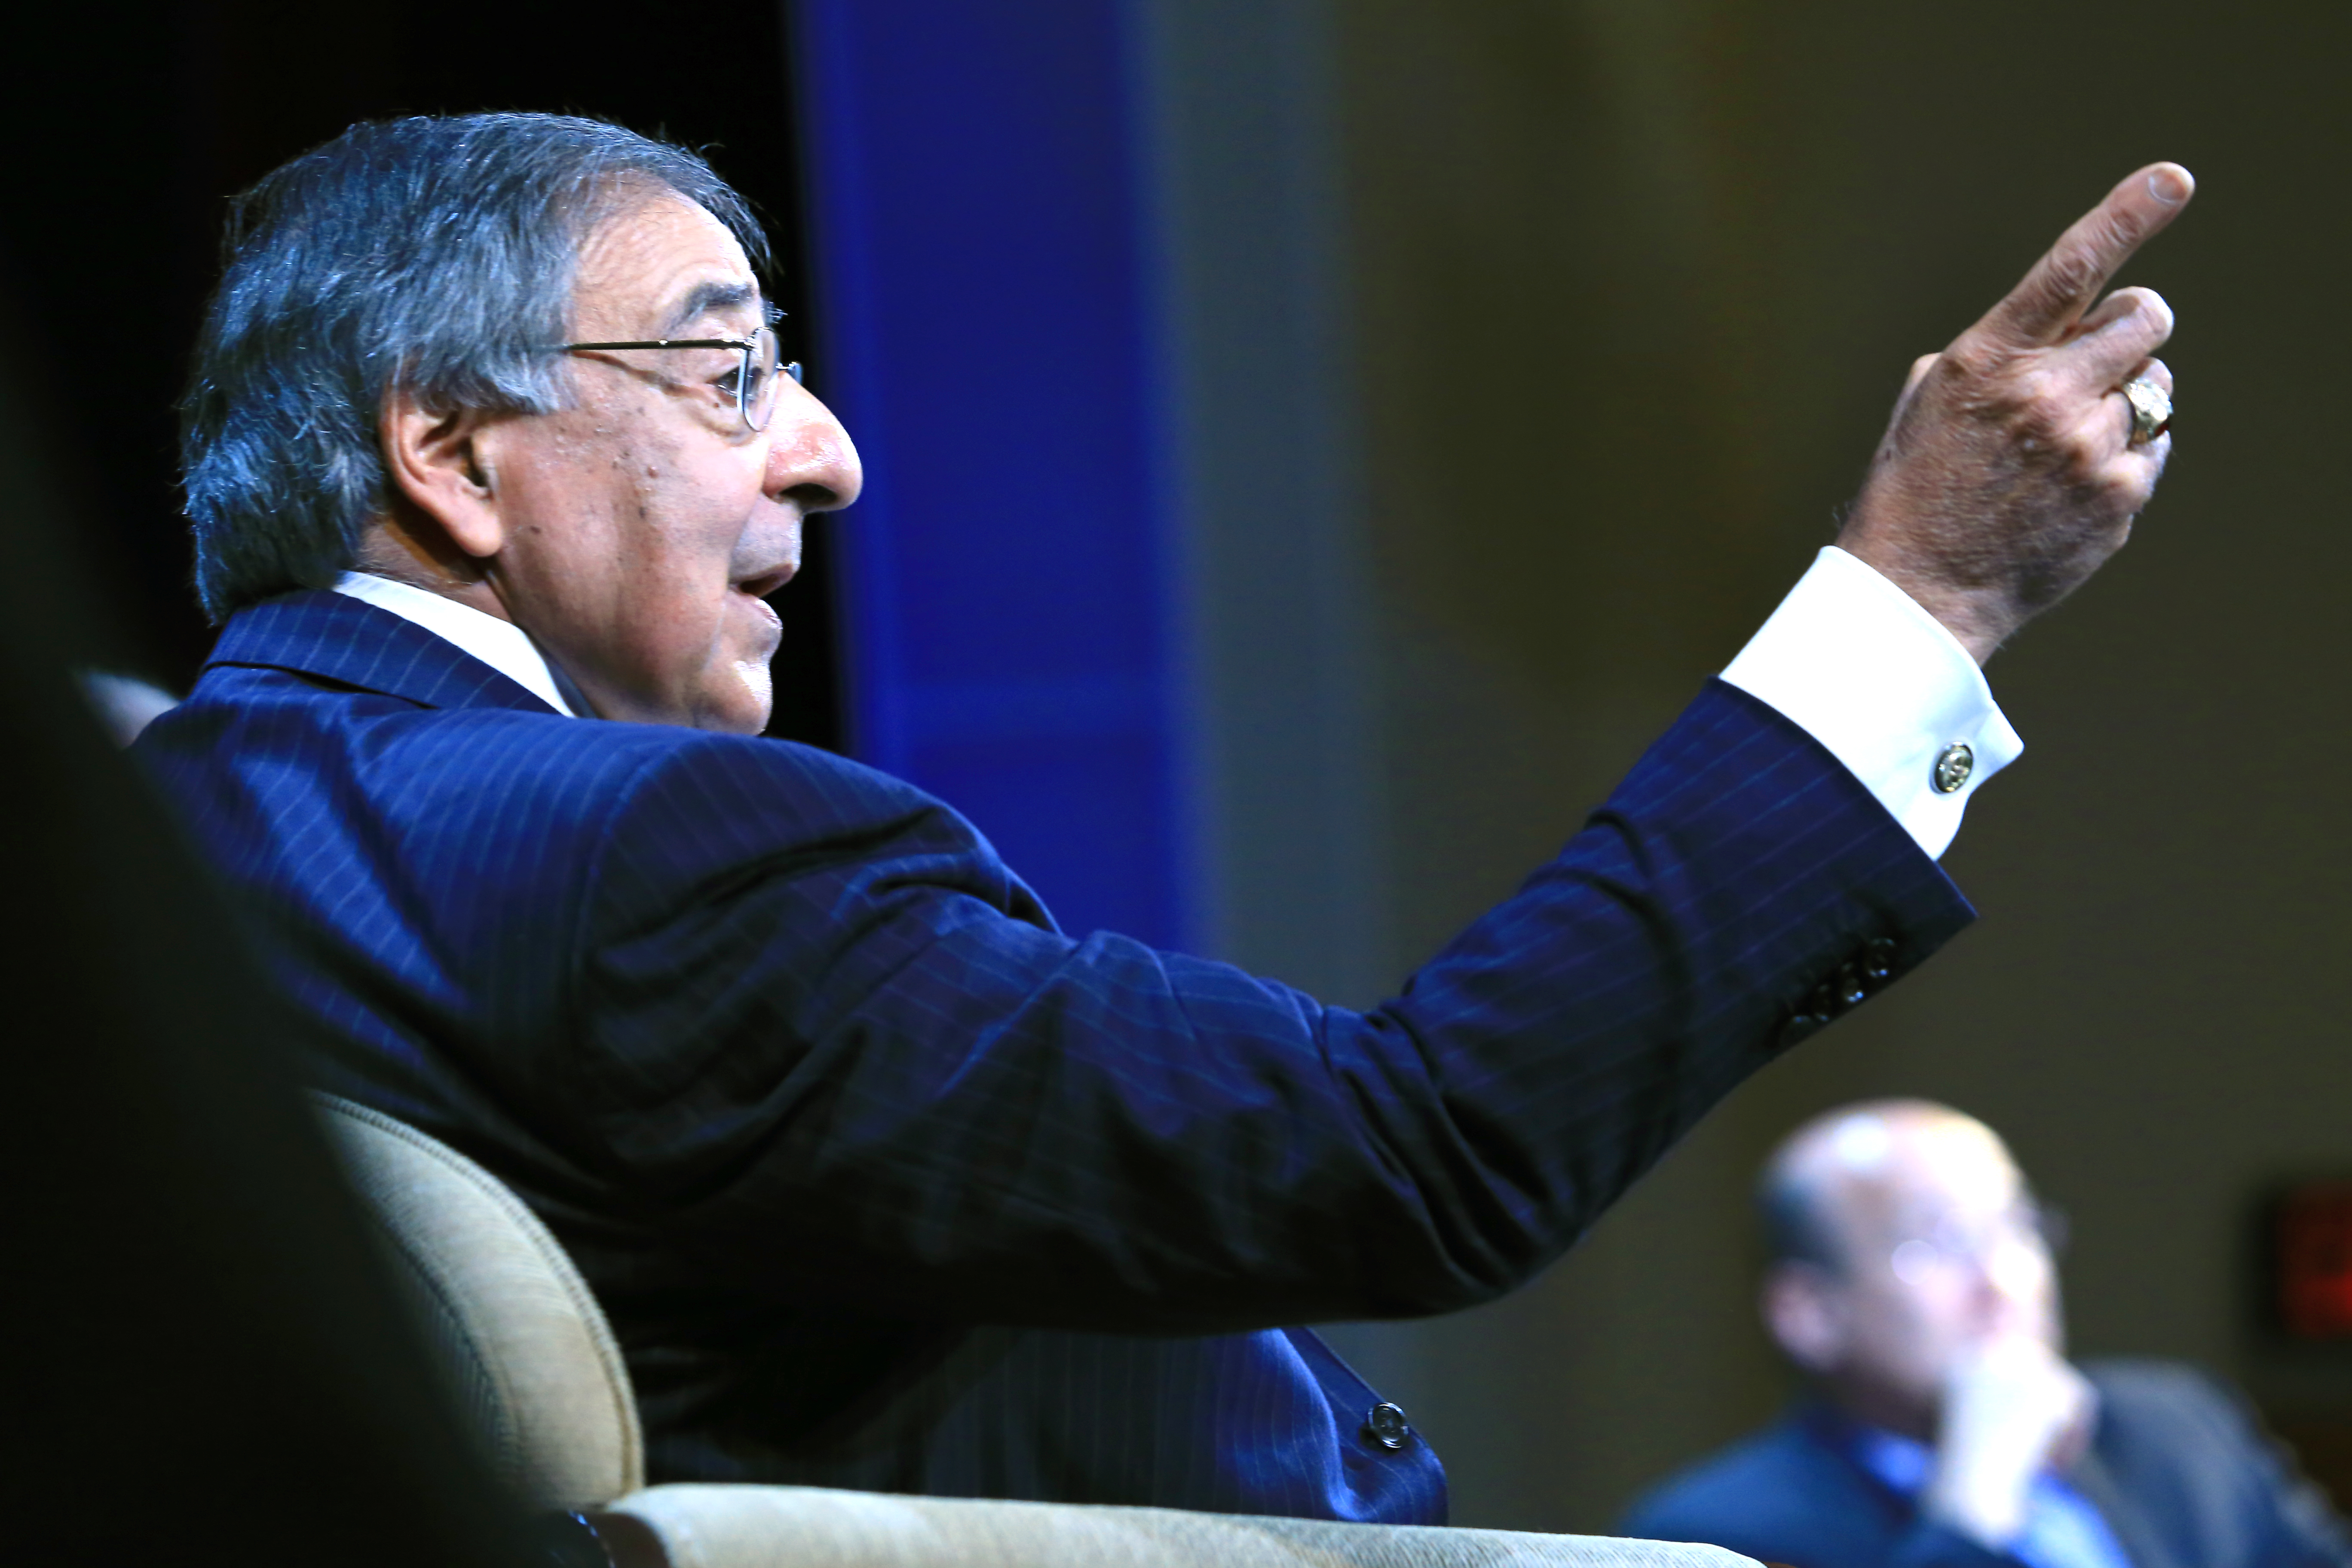 Each spring, Secretary Panetta moderates the Panetta Institute's highly  acclaimed lecture series that brings national leaders, policy experts and  ...